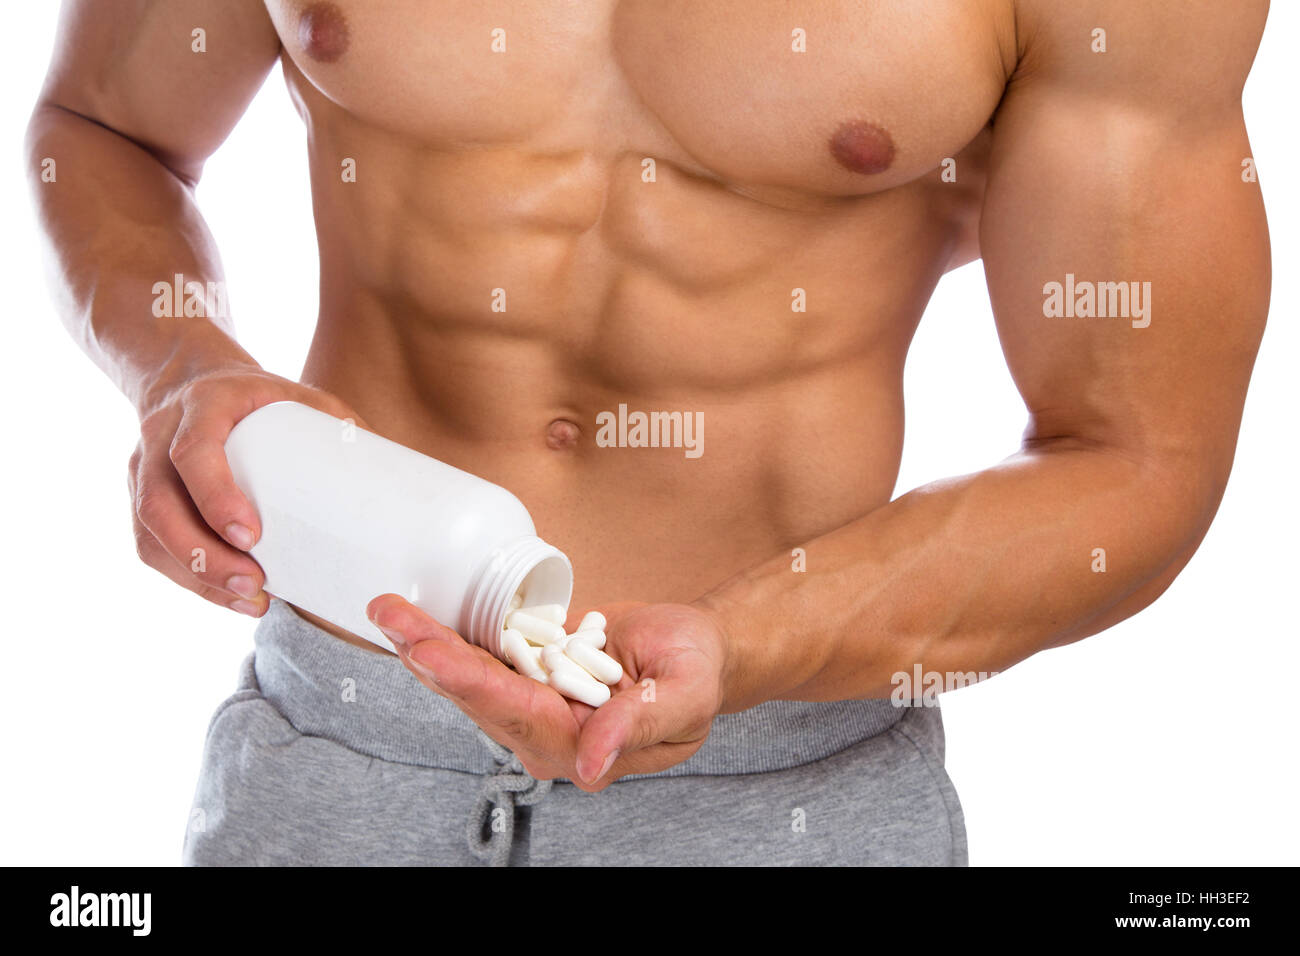 Doping anabolic pills abuse bodybuilder bodybuilding muscles strong muscular man body builder - Stock Image